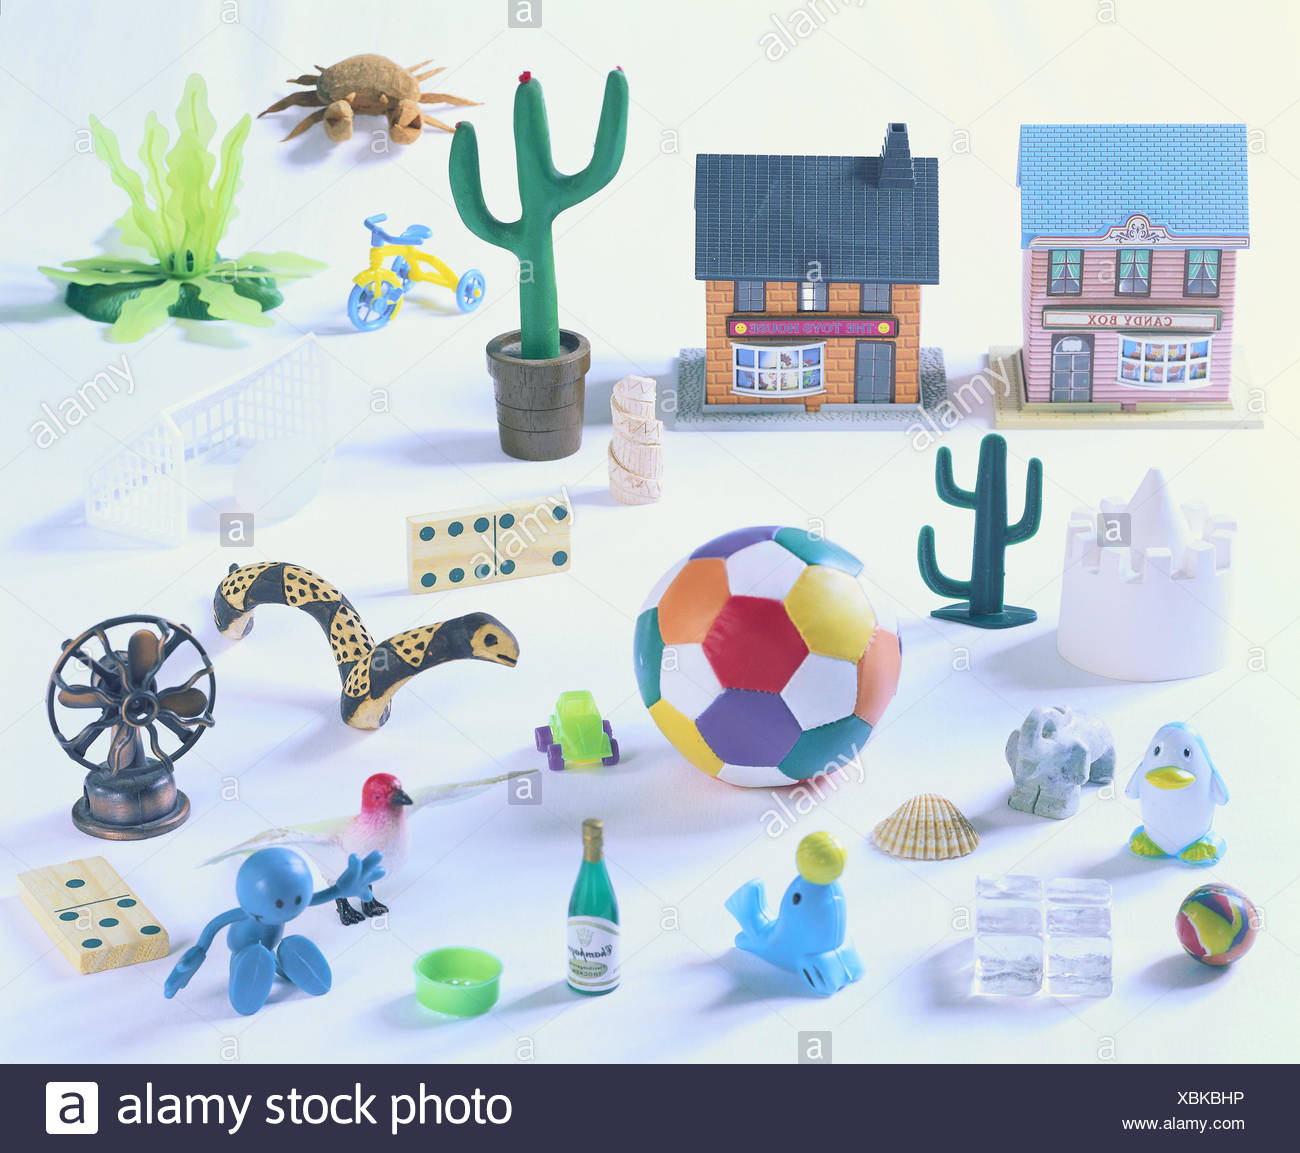 Toys, differently, game figures, figures, merged, miniatures, choice, small, game animals, game figures, objects, colours, forms, materials, conception, childhood, game instinct, variety, - Stock Image